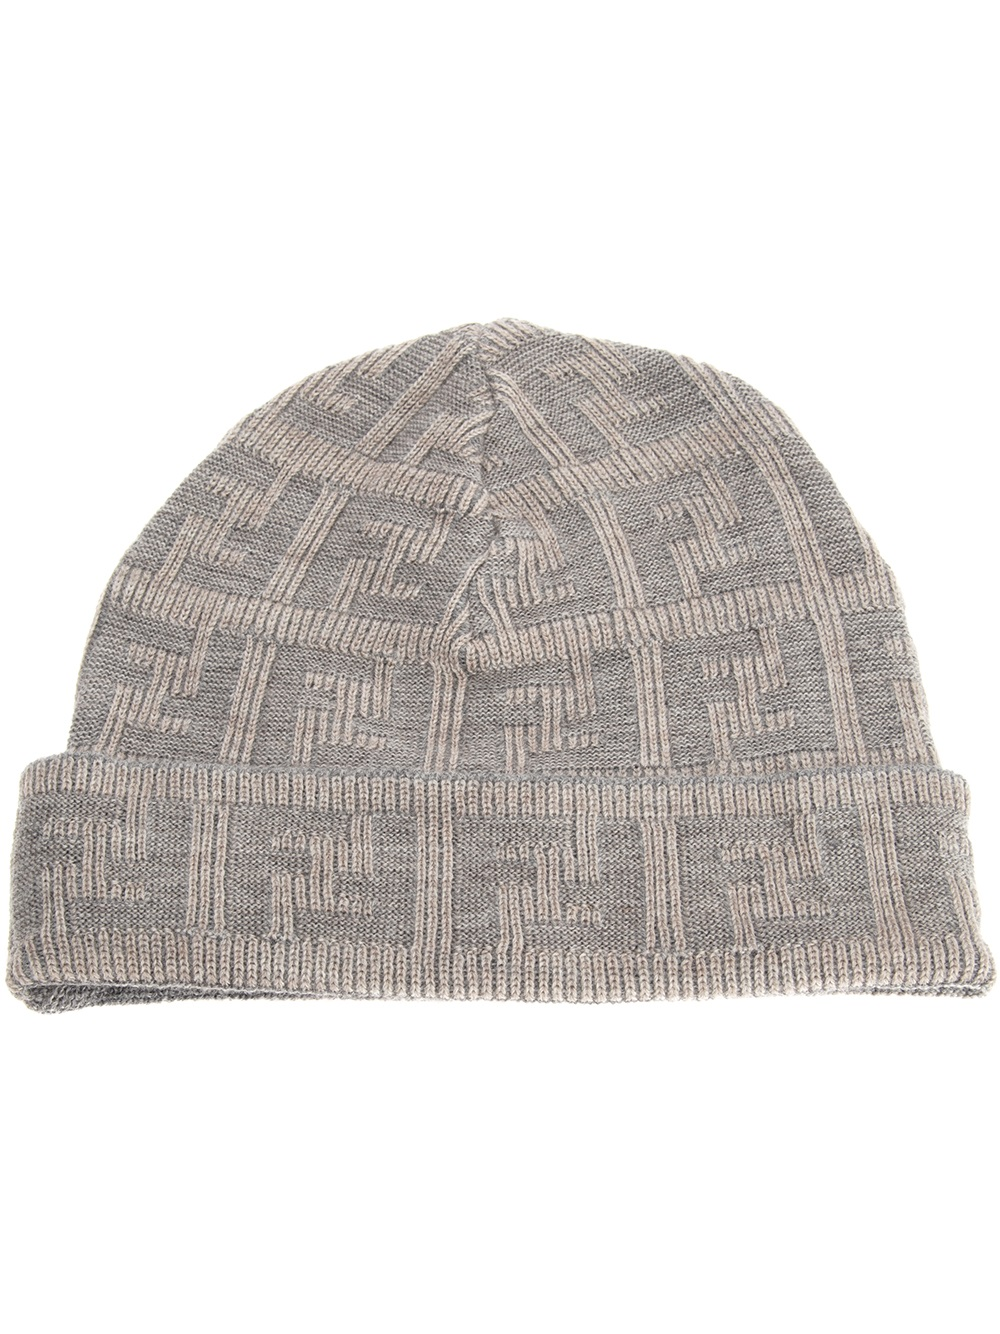 3f749d50f2f Fendi Jacquard Monogram Beanie in Gray for Men - Lyst